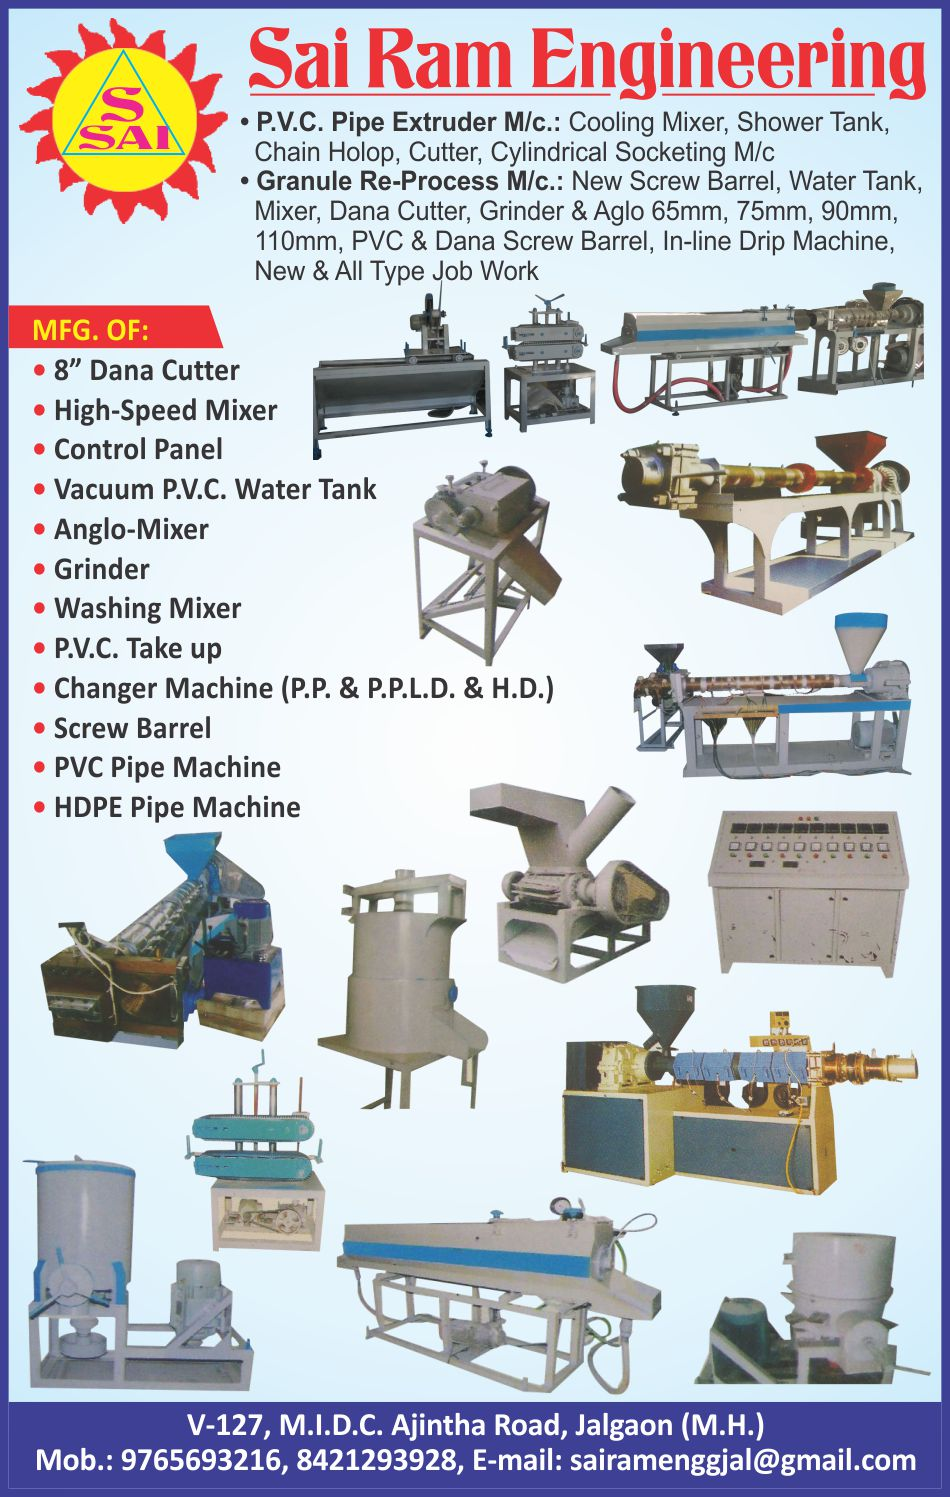 Dana Cutters, High Speed Mixers, Control Panels, Vacuum PVC Water Tanks, Anglo Mixers, Grinders, Washing Mixers, PVC Take Up, PP Changer Machines, PPLD Changer Machines, HD Changer Machines, Screw Barrels, PVC Pipe Machines, HDPE Pipe Machines, PVC Pipe Extruder Machines, Cooling Mixers, Shower Tanks, Chain Holop, Cutters, Cylinderical Socketing Machines, Granule Re Process Machines, New Screw Barrels, Water Tanks, Mixer, Dana Cutters, Grinders, Aglo, PVC Screw Barrels, In Line Drip Machines